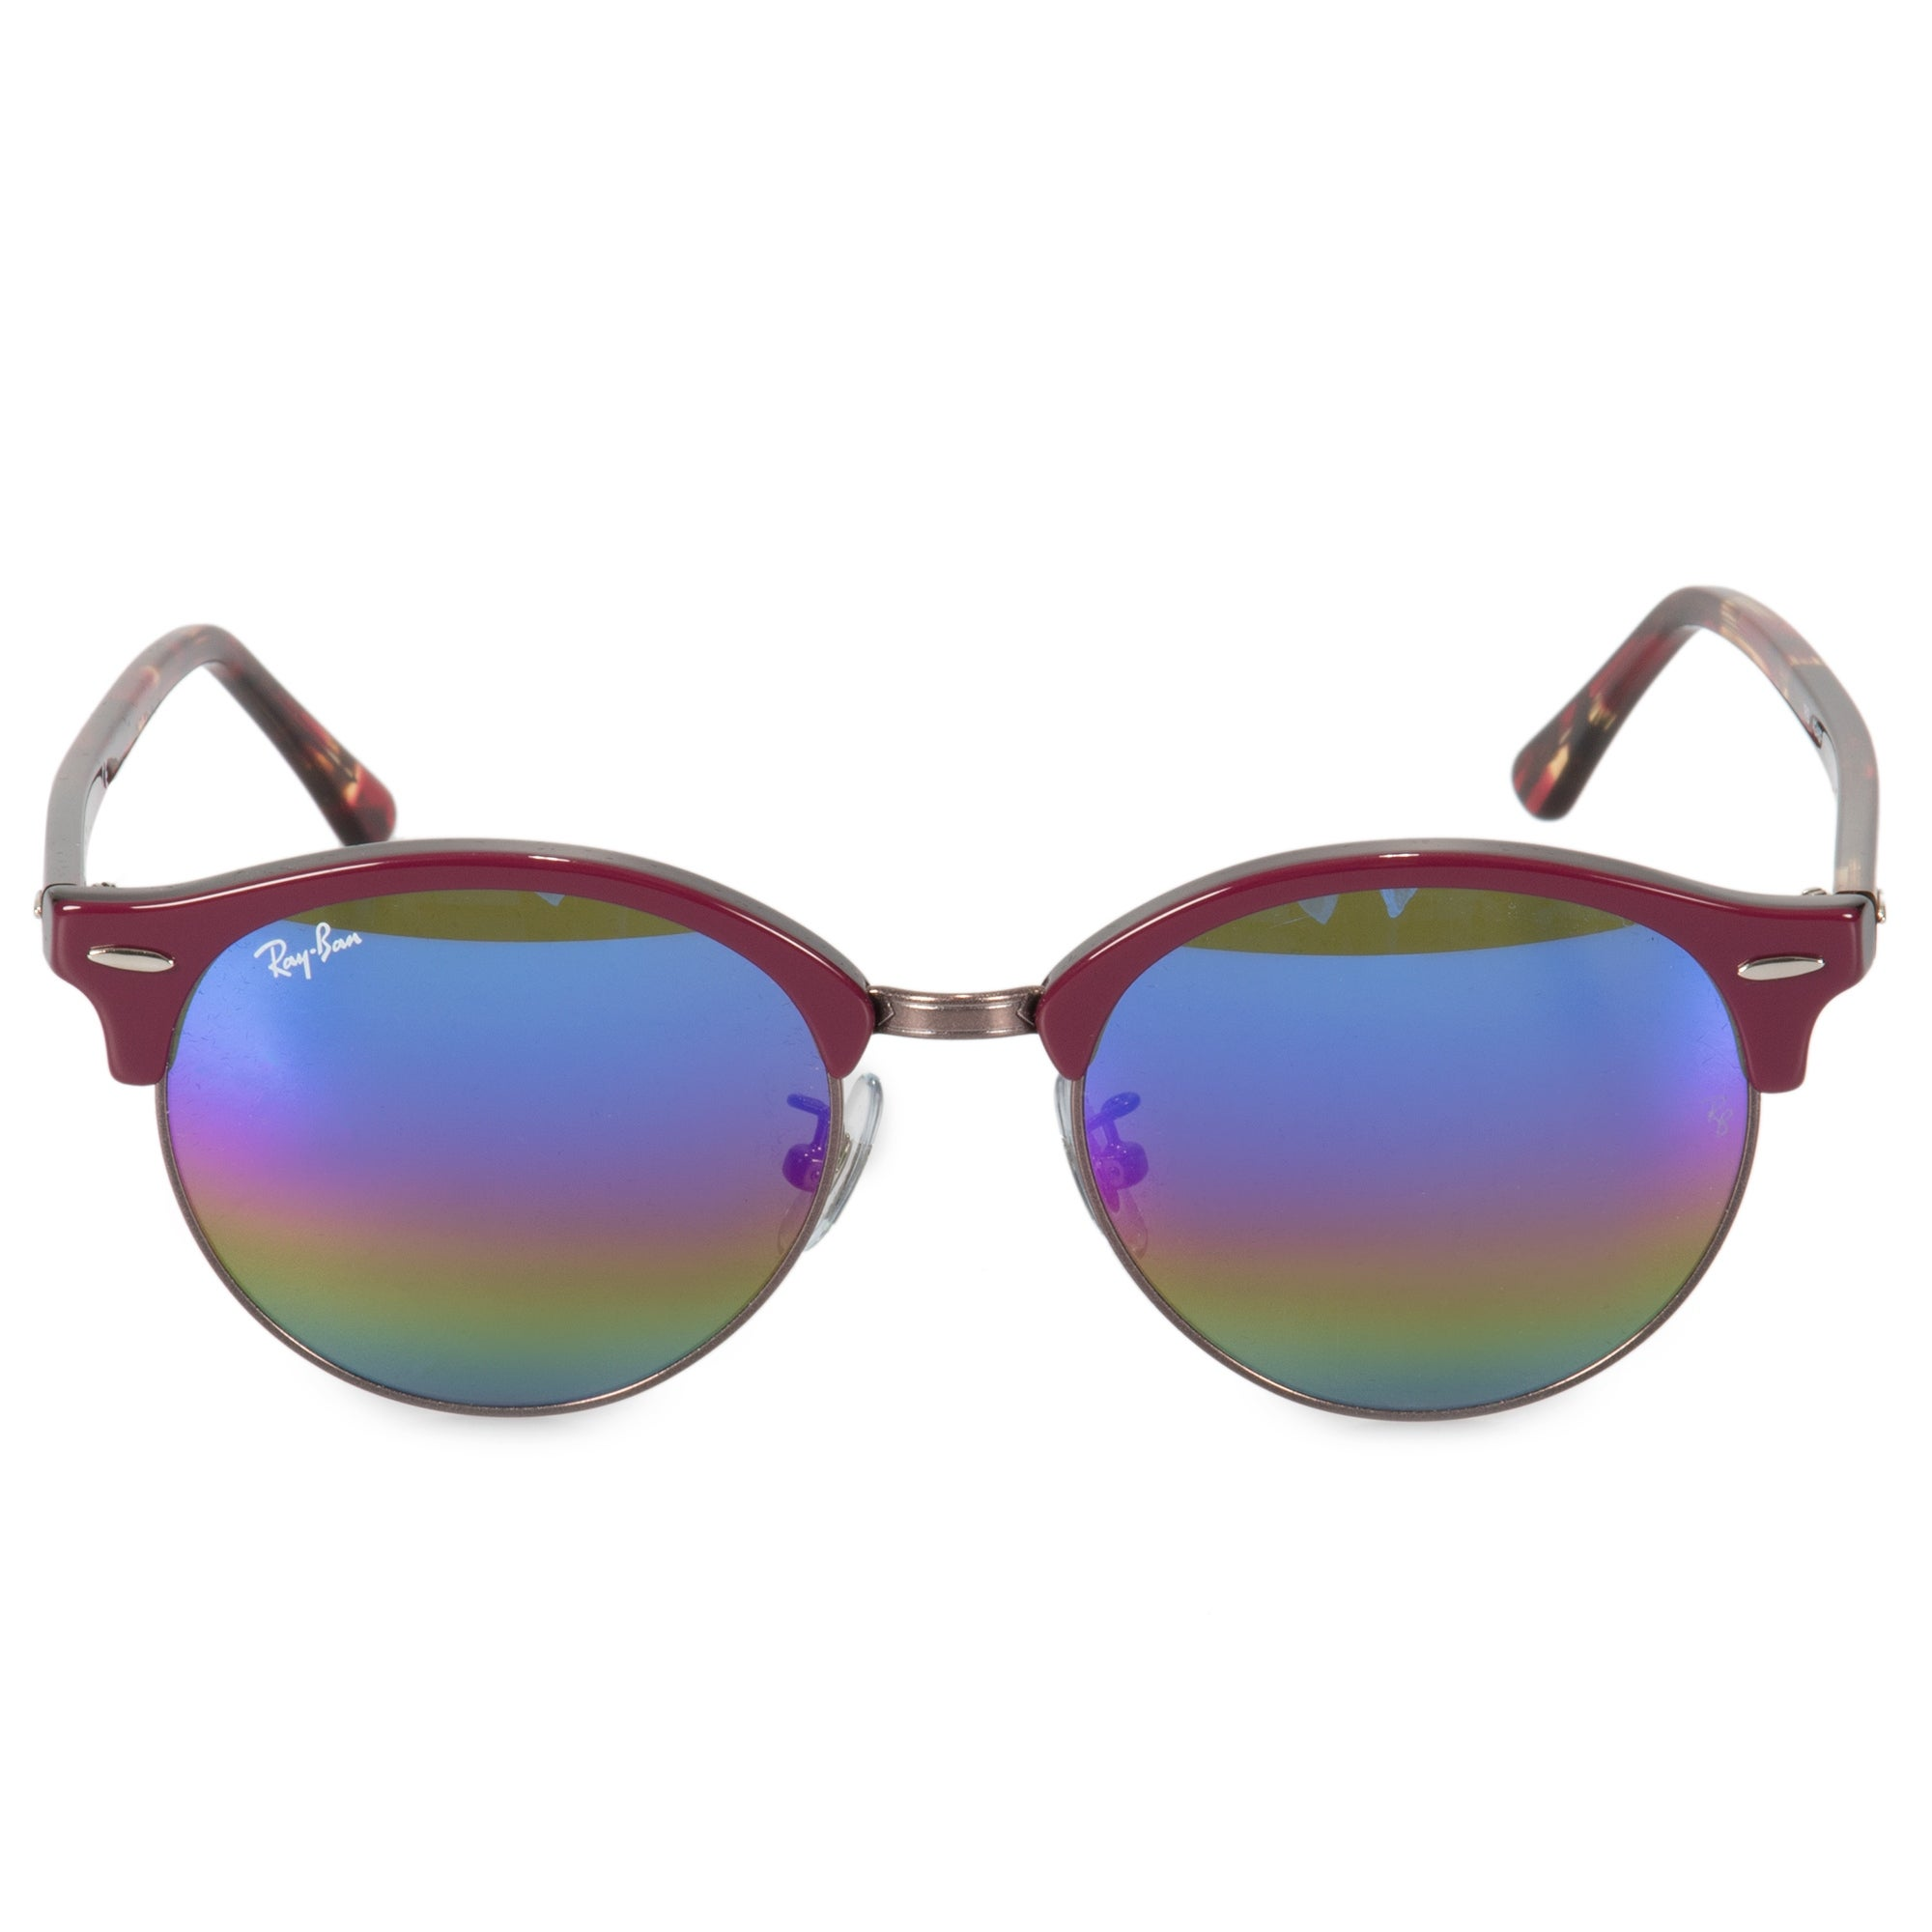 823fb9570 Round Ray-Ban Sunglasses | Shop our Best Clothing & Shoes Deals Online at  Overstock